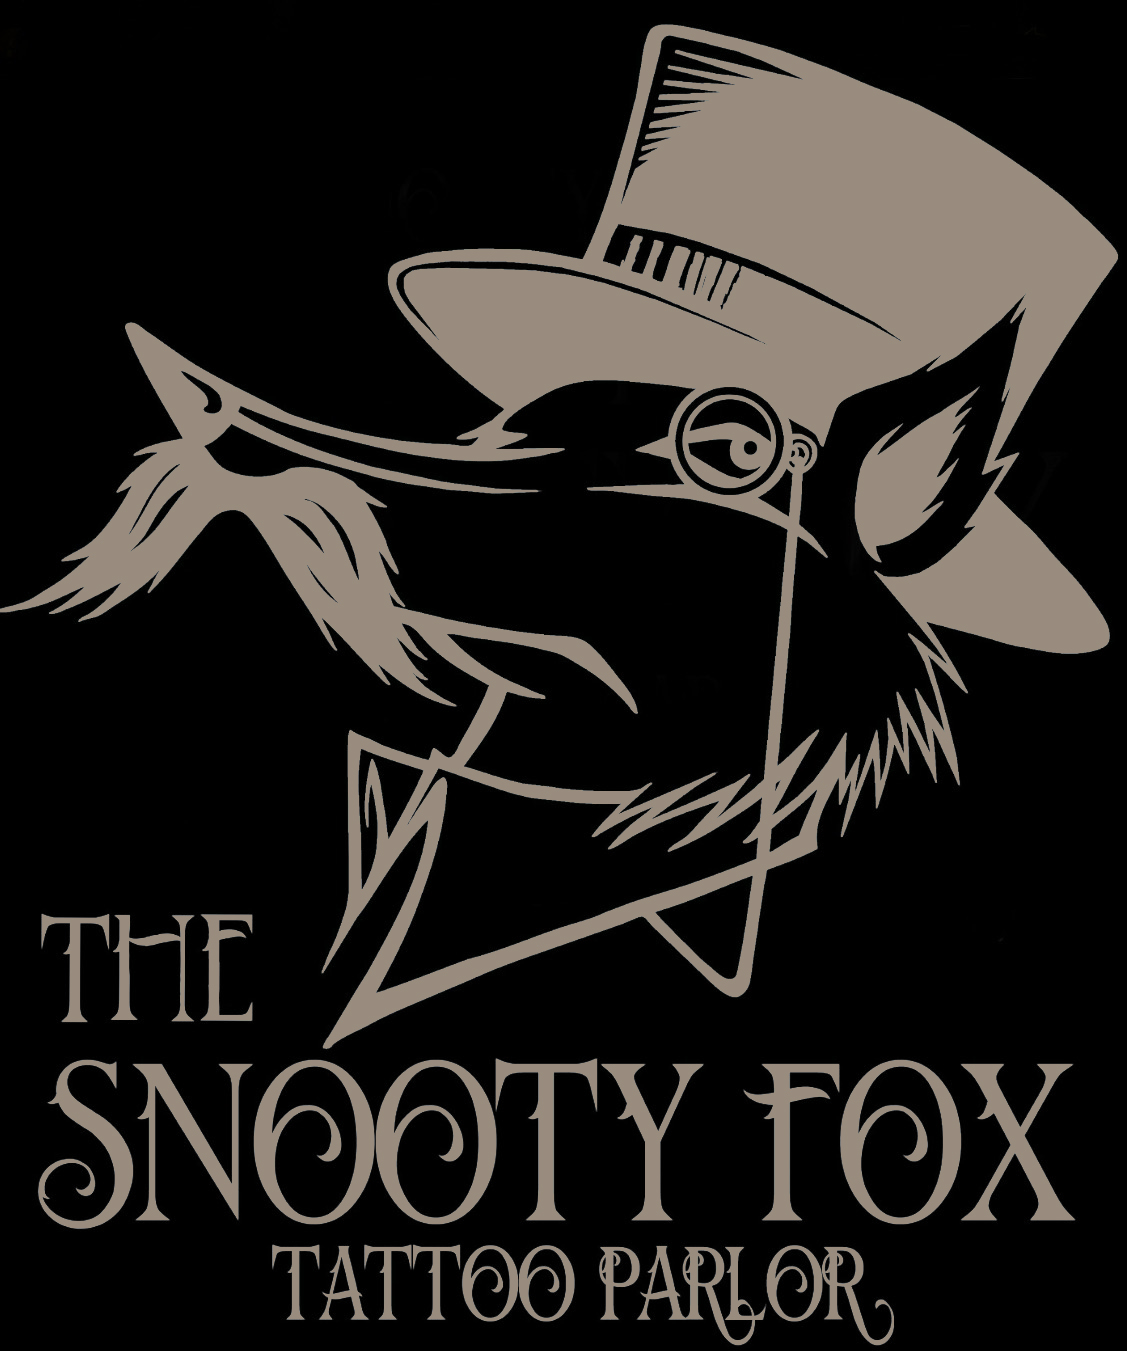 the snooty fox tattoo parlor